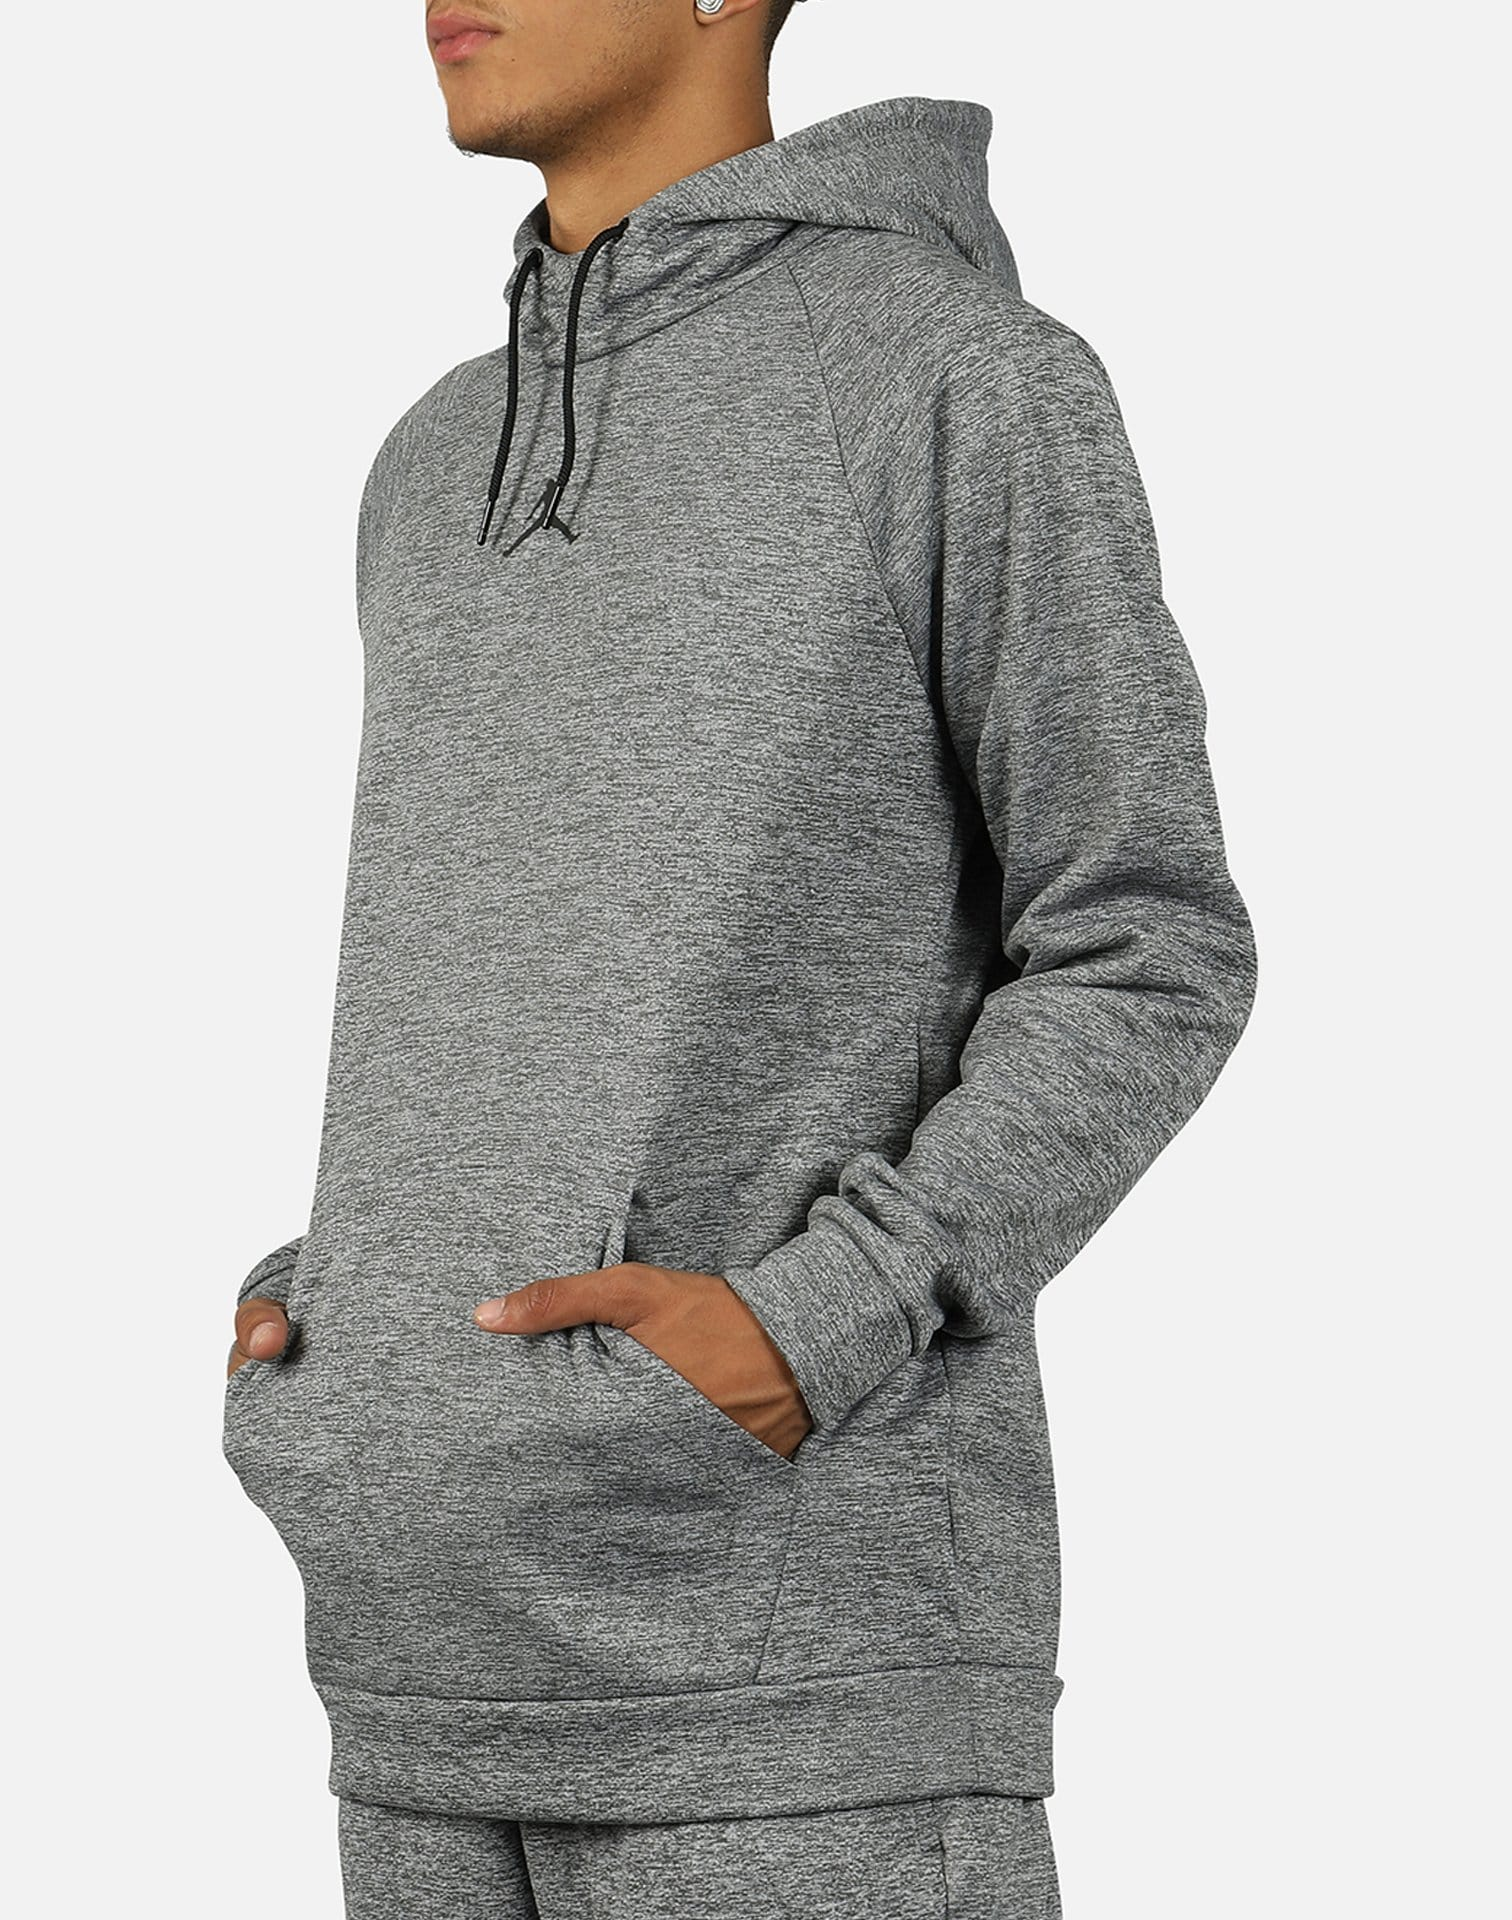 Jordan Men's 23 Alpha Thermal Pullover Hoodie